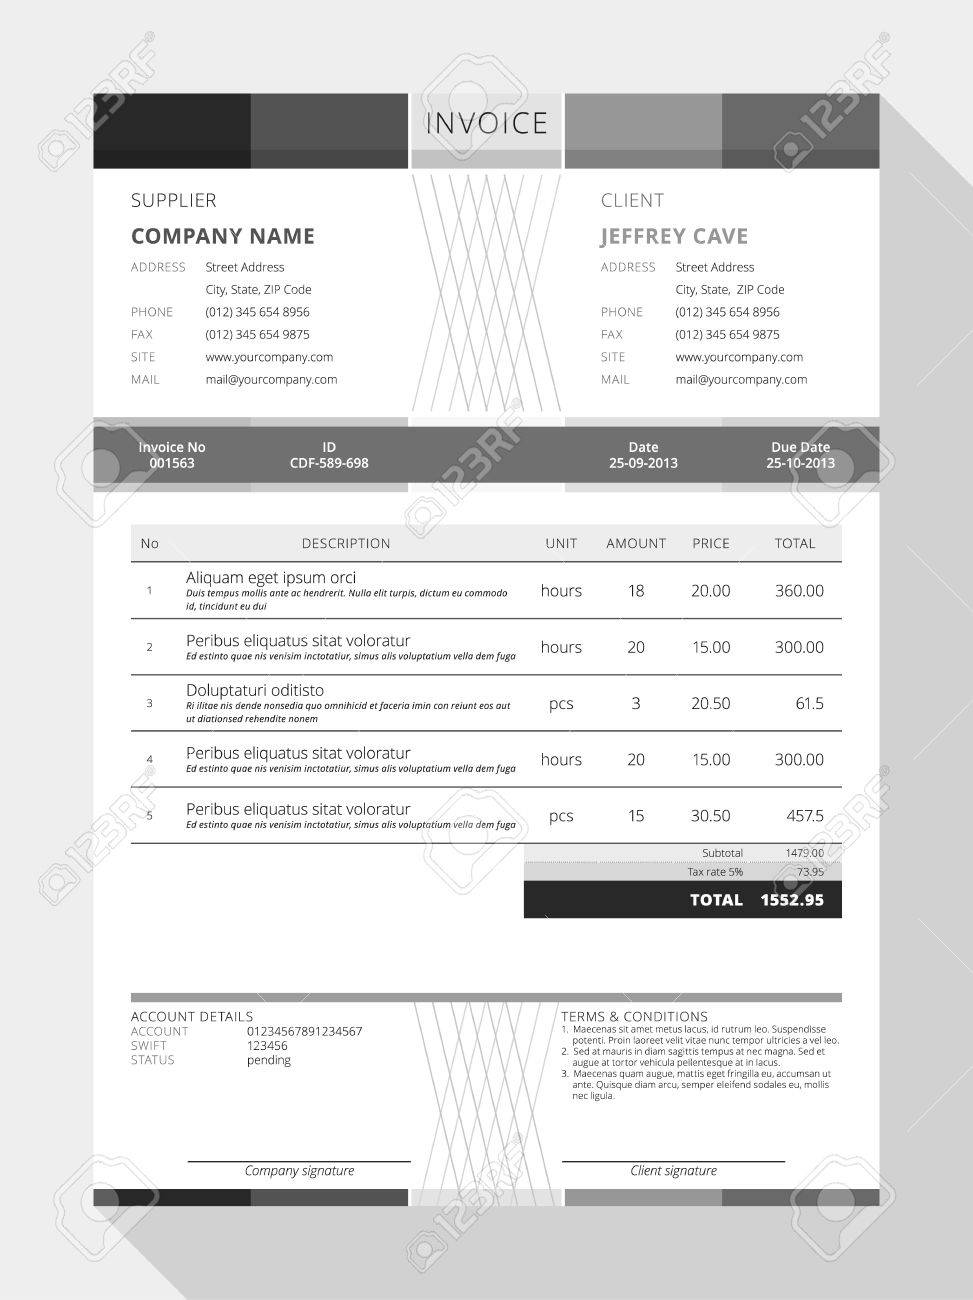 Hucareus  Wonderful Design An Invoice  Professional Graphic Design Invoice  With Magnificent Vector Customizable Invoice Form Template Design Vector   Design An Invoice With Comely Ultimate Invoice Finance Also Invoice Without Vat In Addition Invoice Template Open Office Free And Example Of Sales Invoice As Well As Printable Blank Invoice Forms Additionally Invoice Online Generator From Happytomco With Hucareus  Magnificent Design An Invoice  Professional Graphic Design Invoice  With Comely Vector Customizable Invoice Form Template Design Vector   Design An Invoice And Wonderful Ultimate Invoice Finance Also Invoice Without Vat In Addition Invoice Template Open Office Free From Happytomco